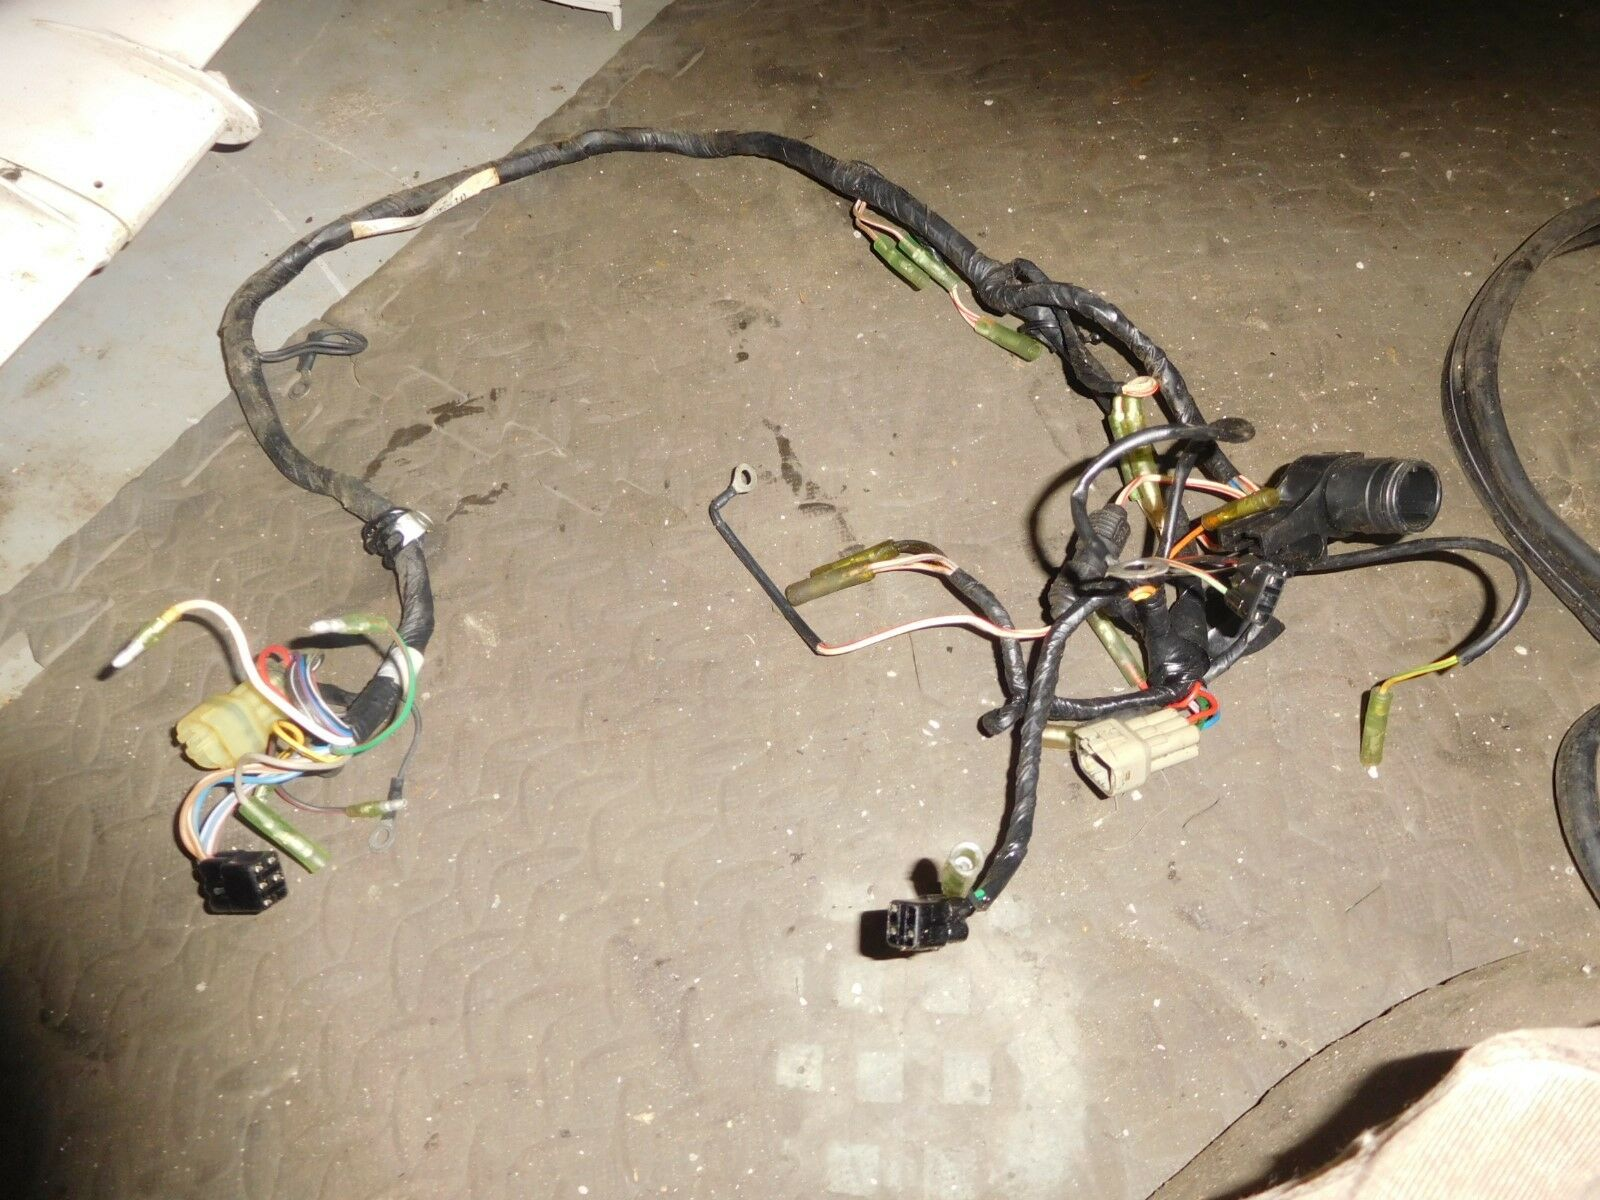 1995 Suzuki Dt75 Outboard 07501 581237 Engine Wiring Harness 96610 New 6 Pin 1 Of 3only Available